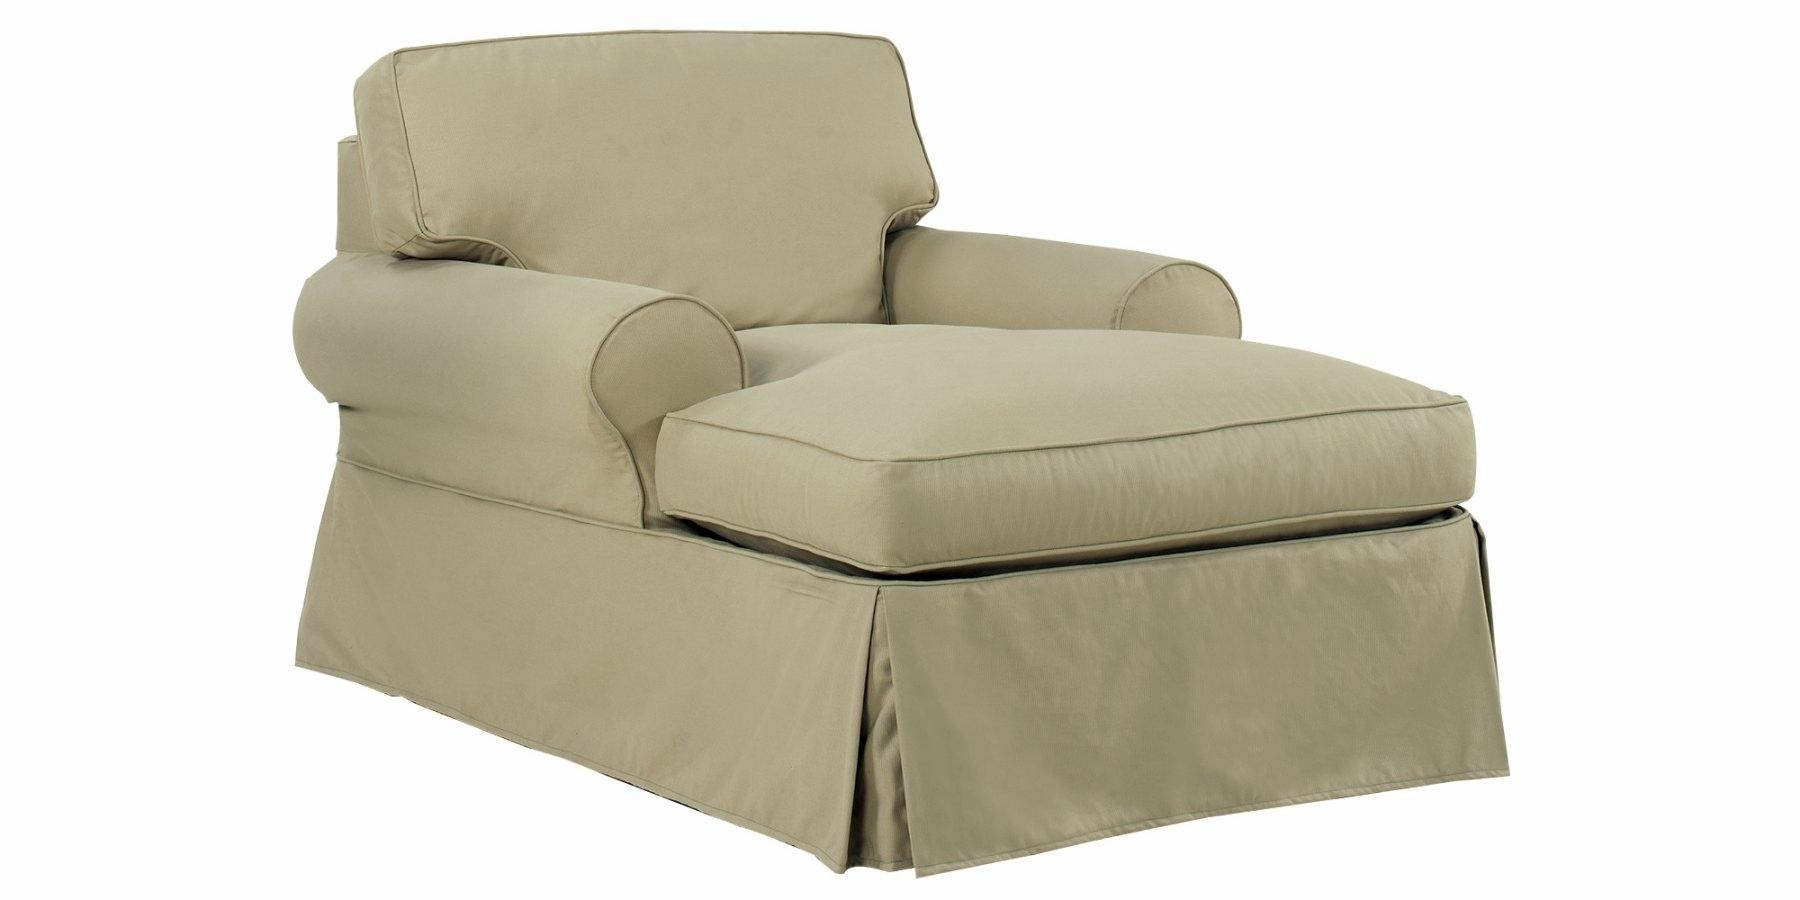 Slipcovered Chaise Lounge Chair | Club Furniture Regarding Slipcovers For Chaise Lounge Sofas (View 3 of 20)